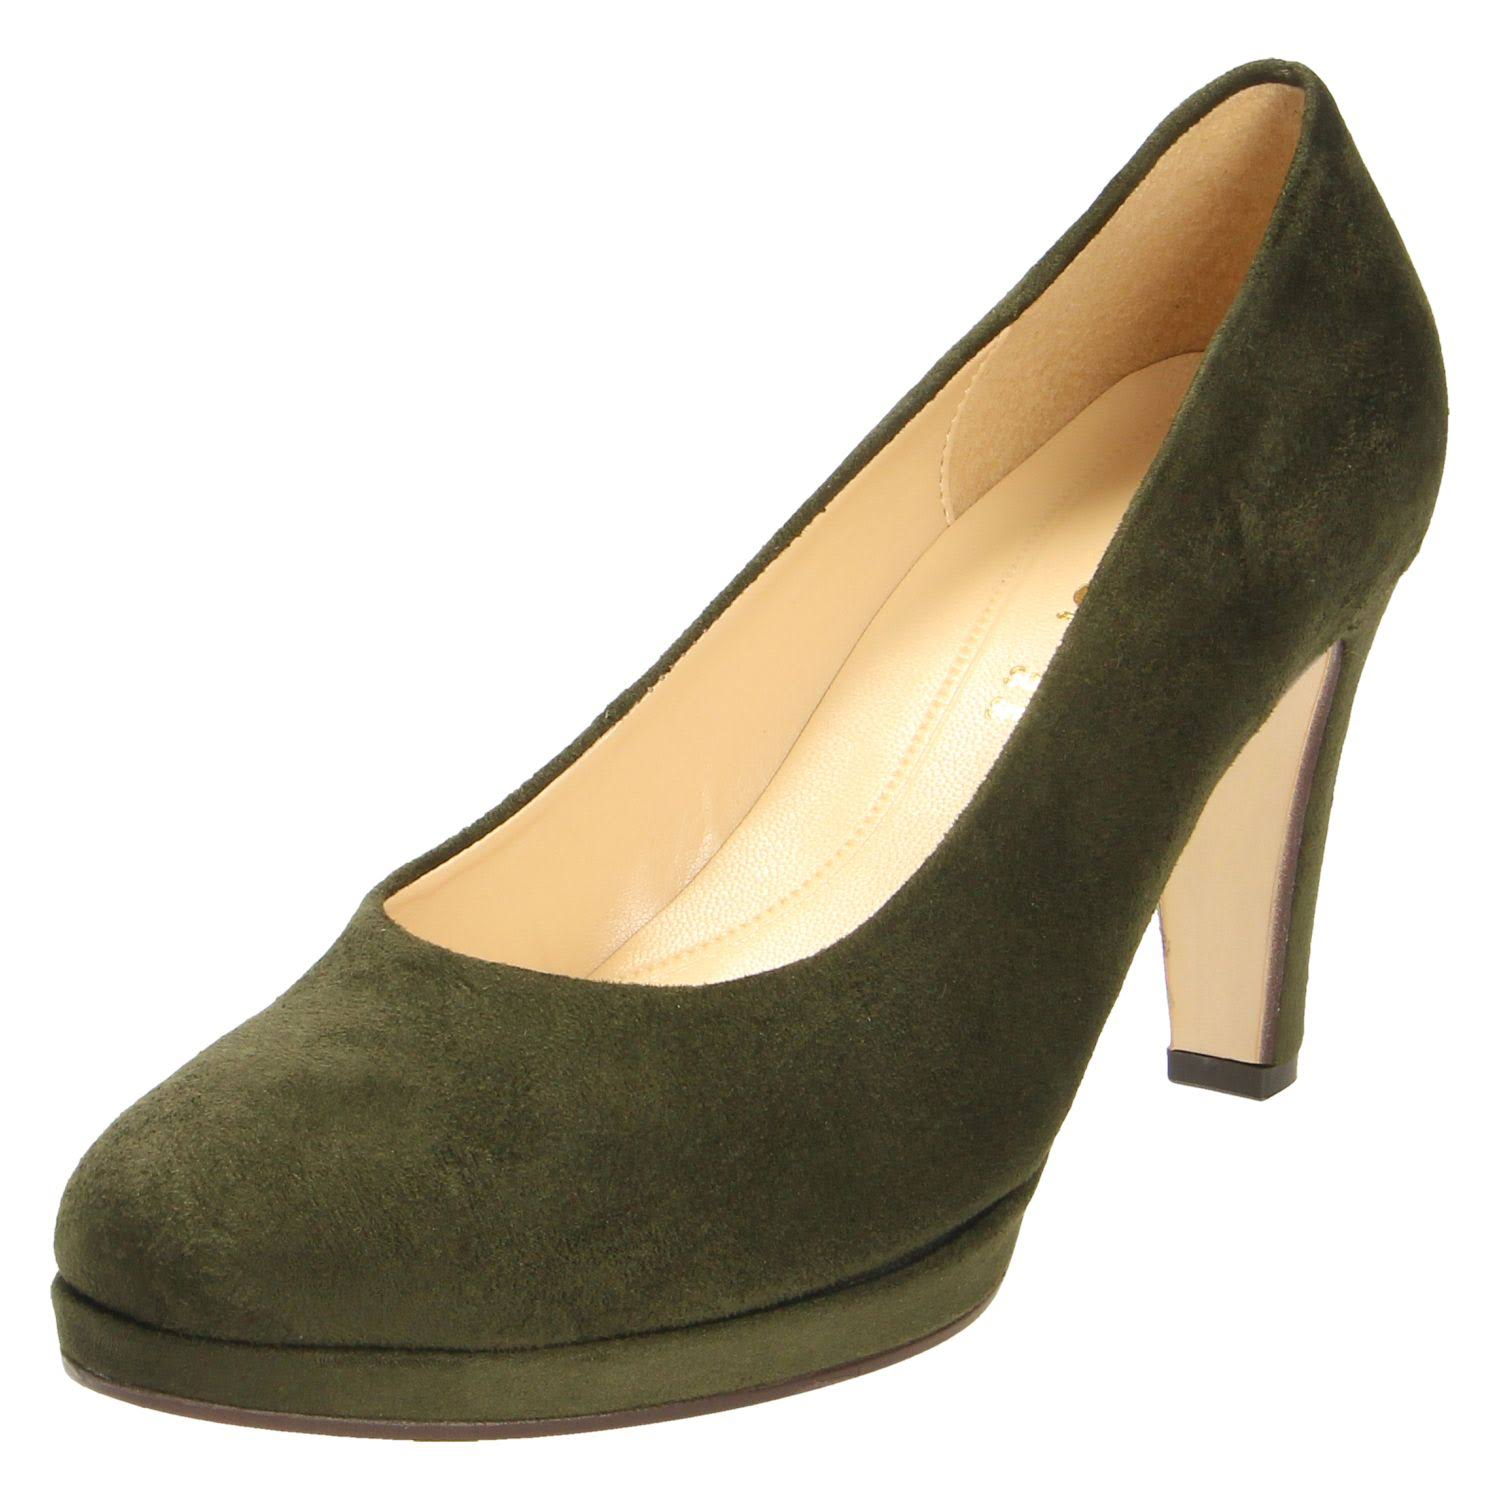 4 Women Green Leather 5 Gabor Heels kXZiuTwOP